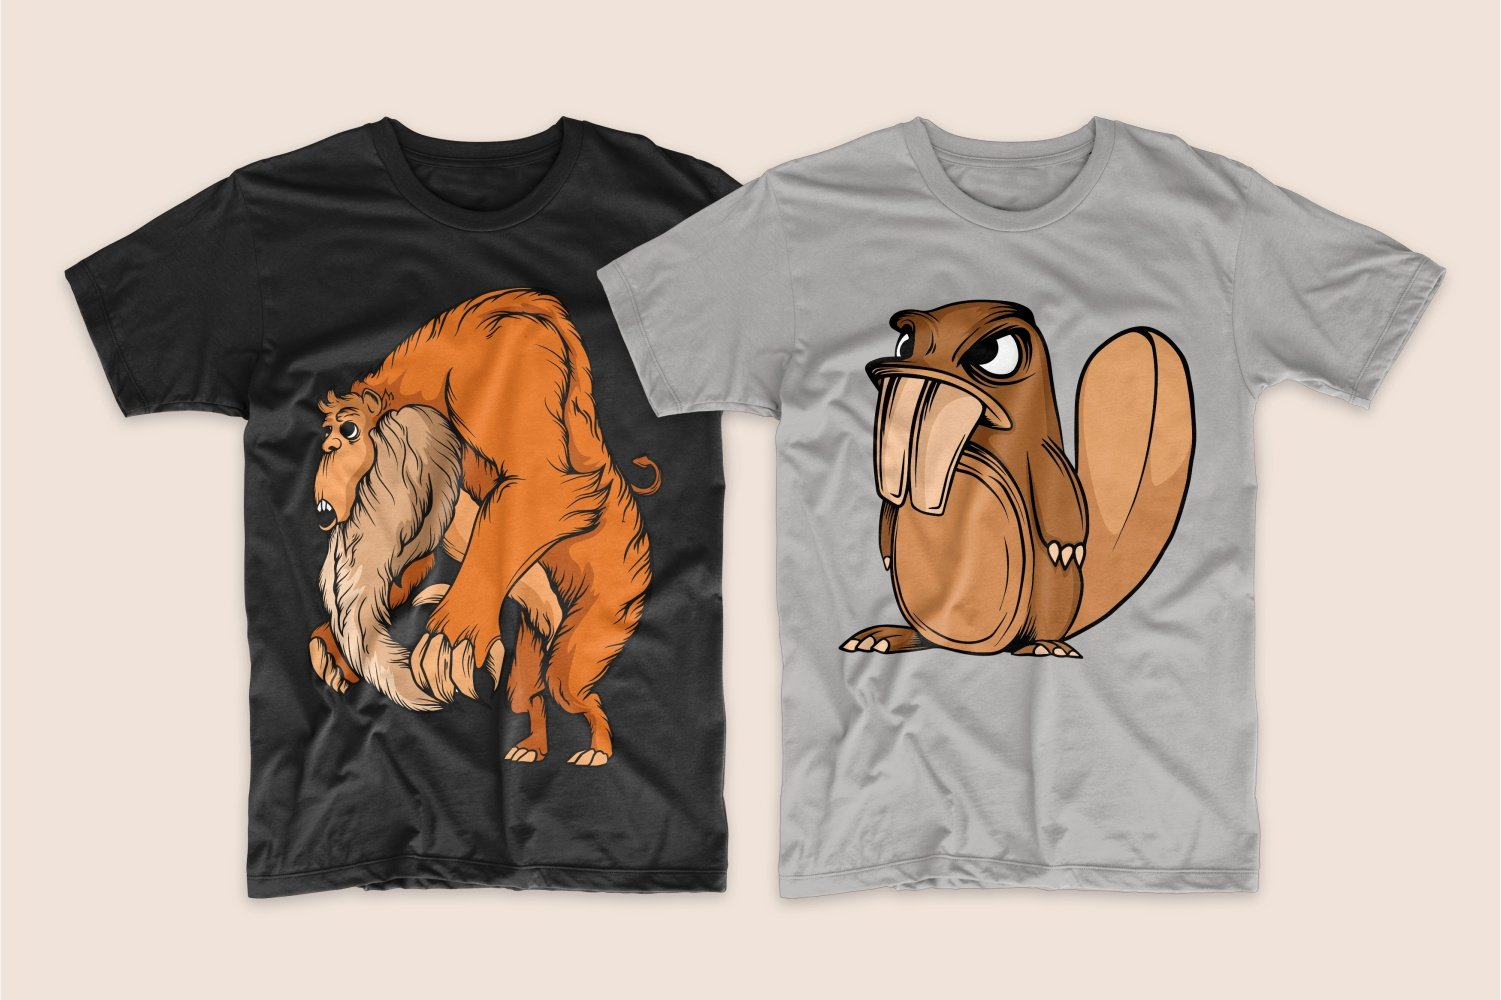 A black T-shirt with a red-haired big monster and a gray one with a beaver.